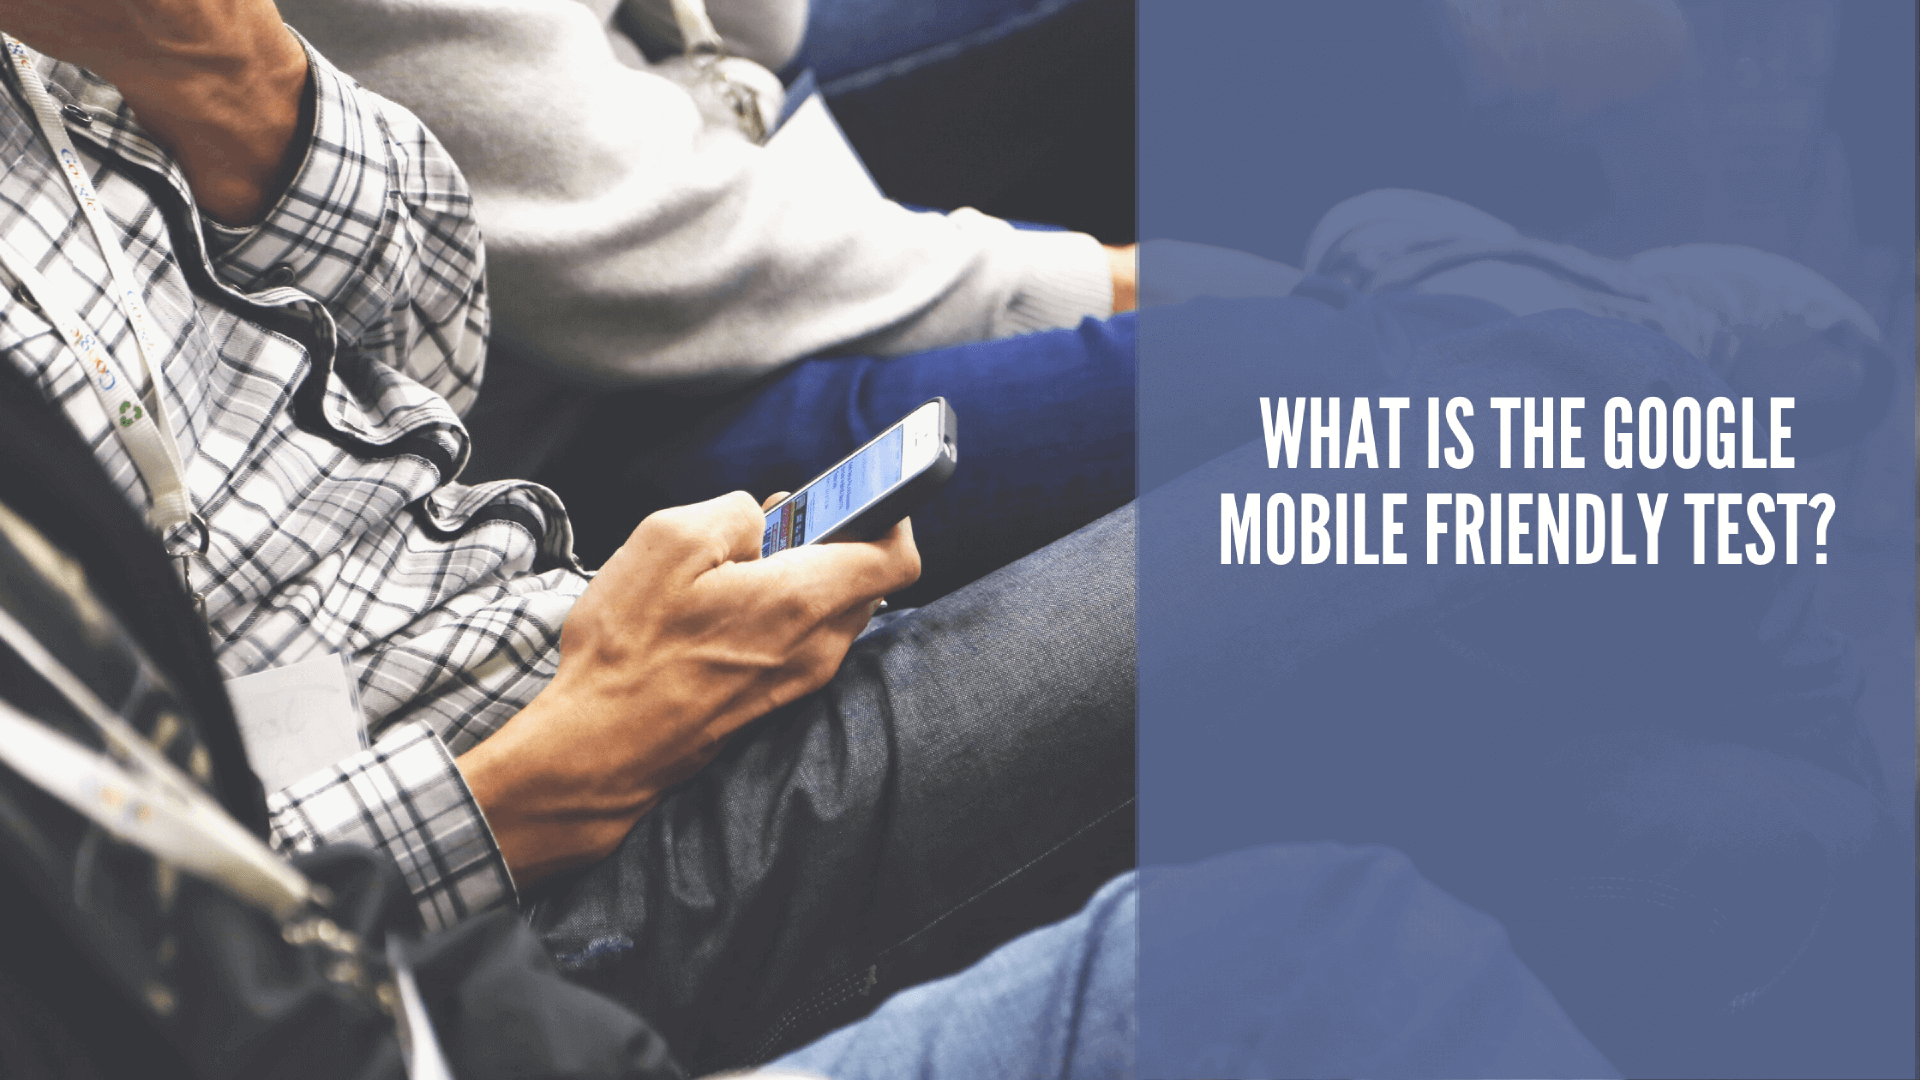 What is the Google Mobile Friendly Test?